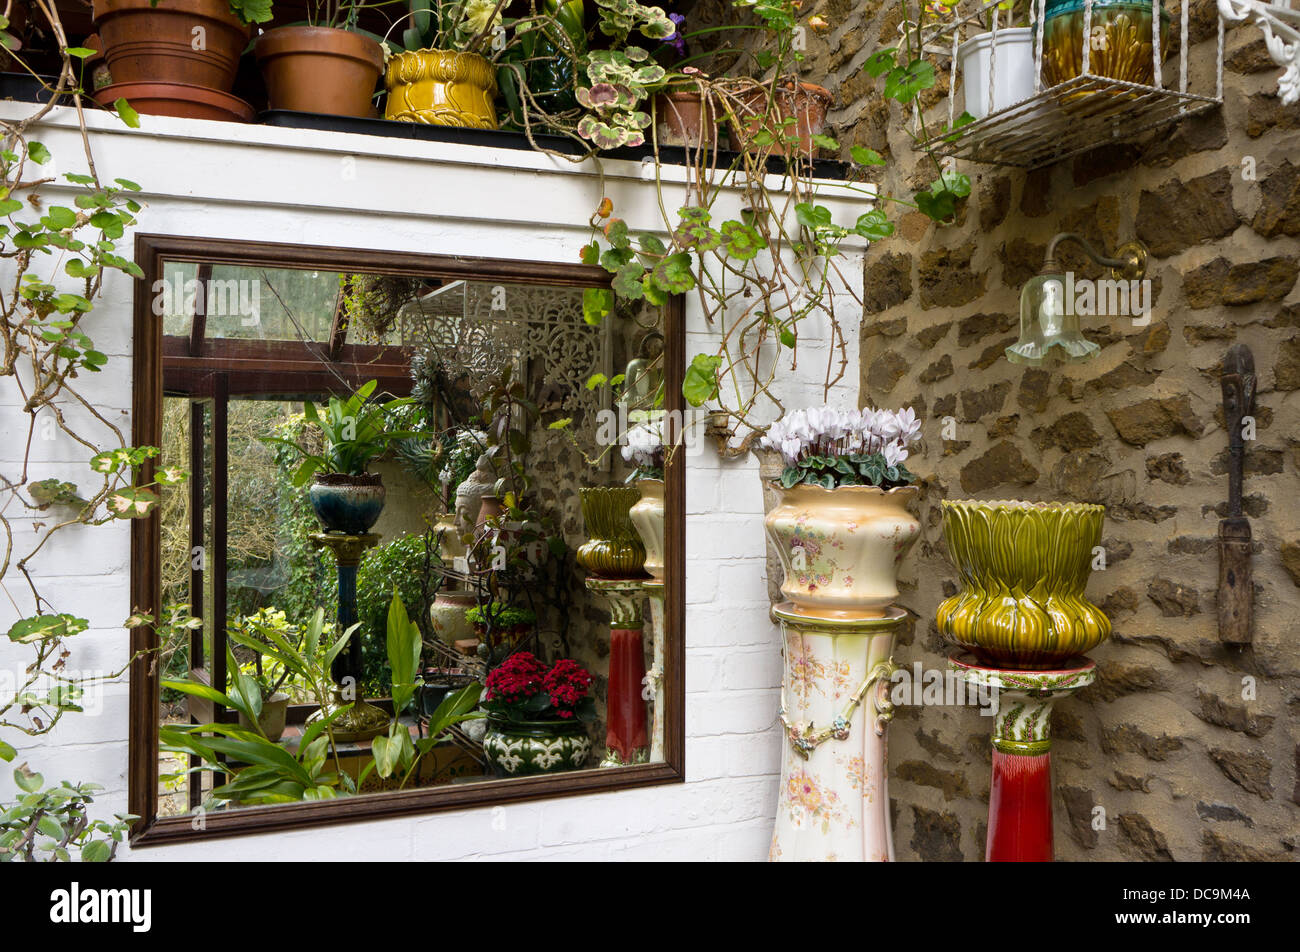 Large square mirror in a UK lean-to conservatory reflecting an arrangement of potted plants and shrubs - Stock Image